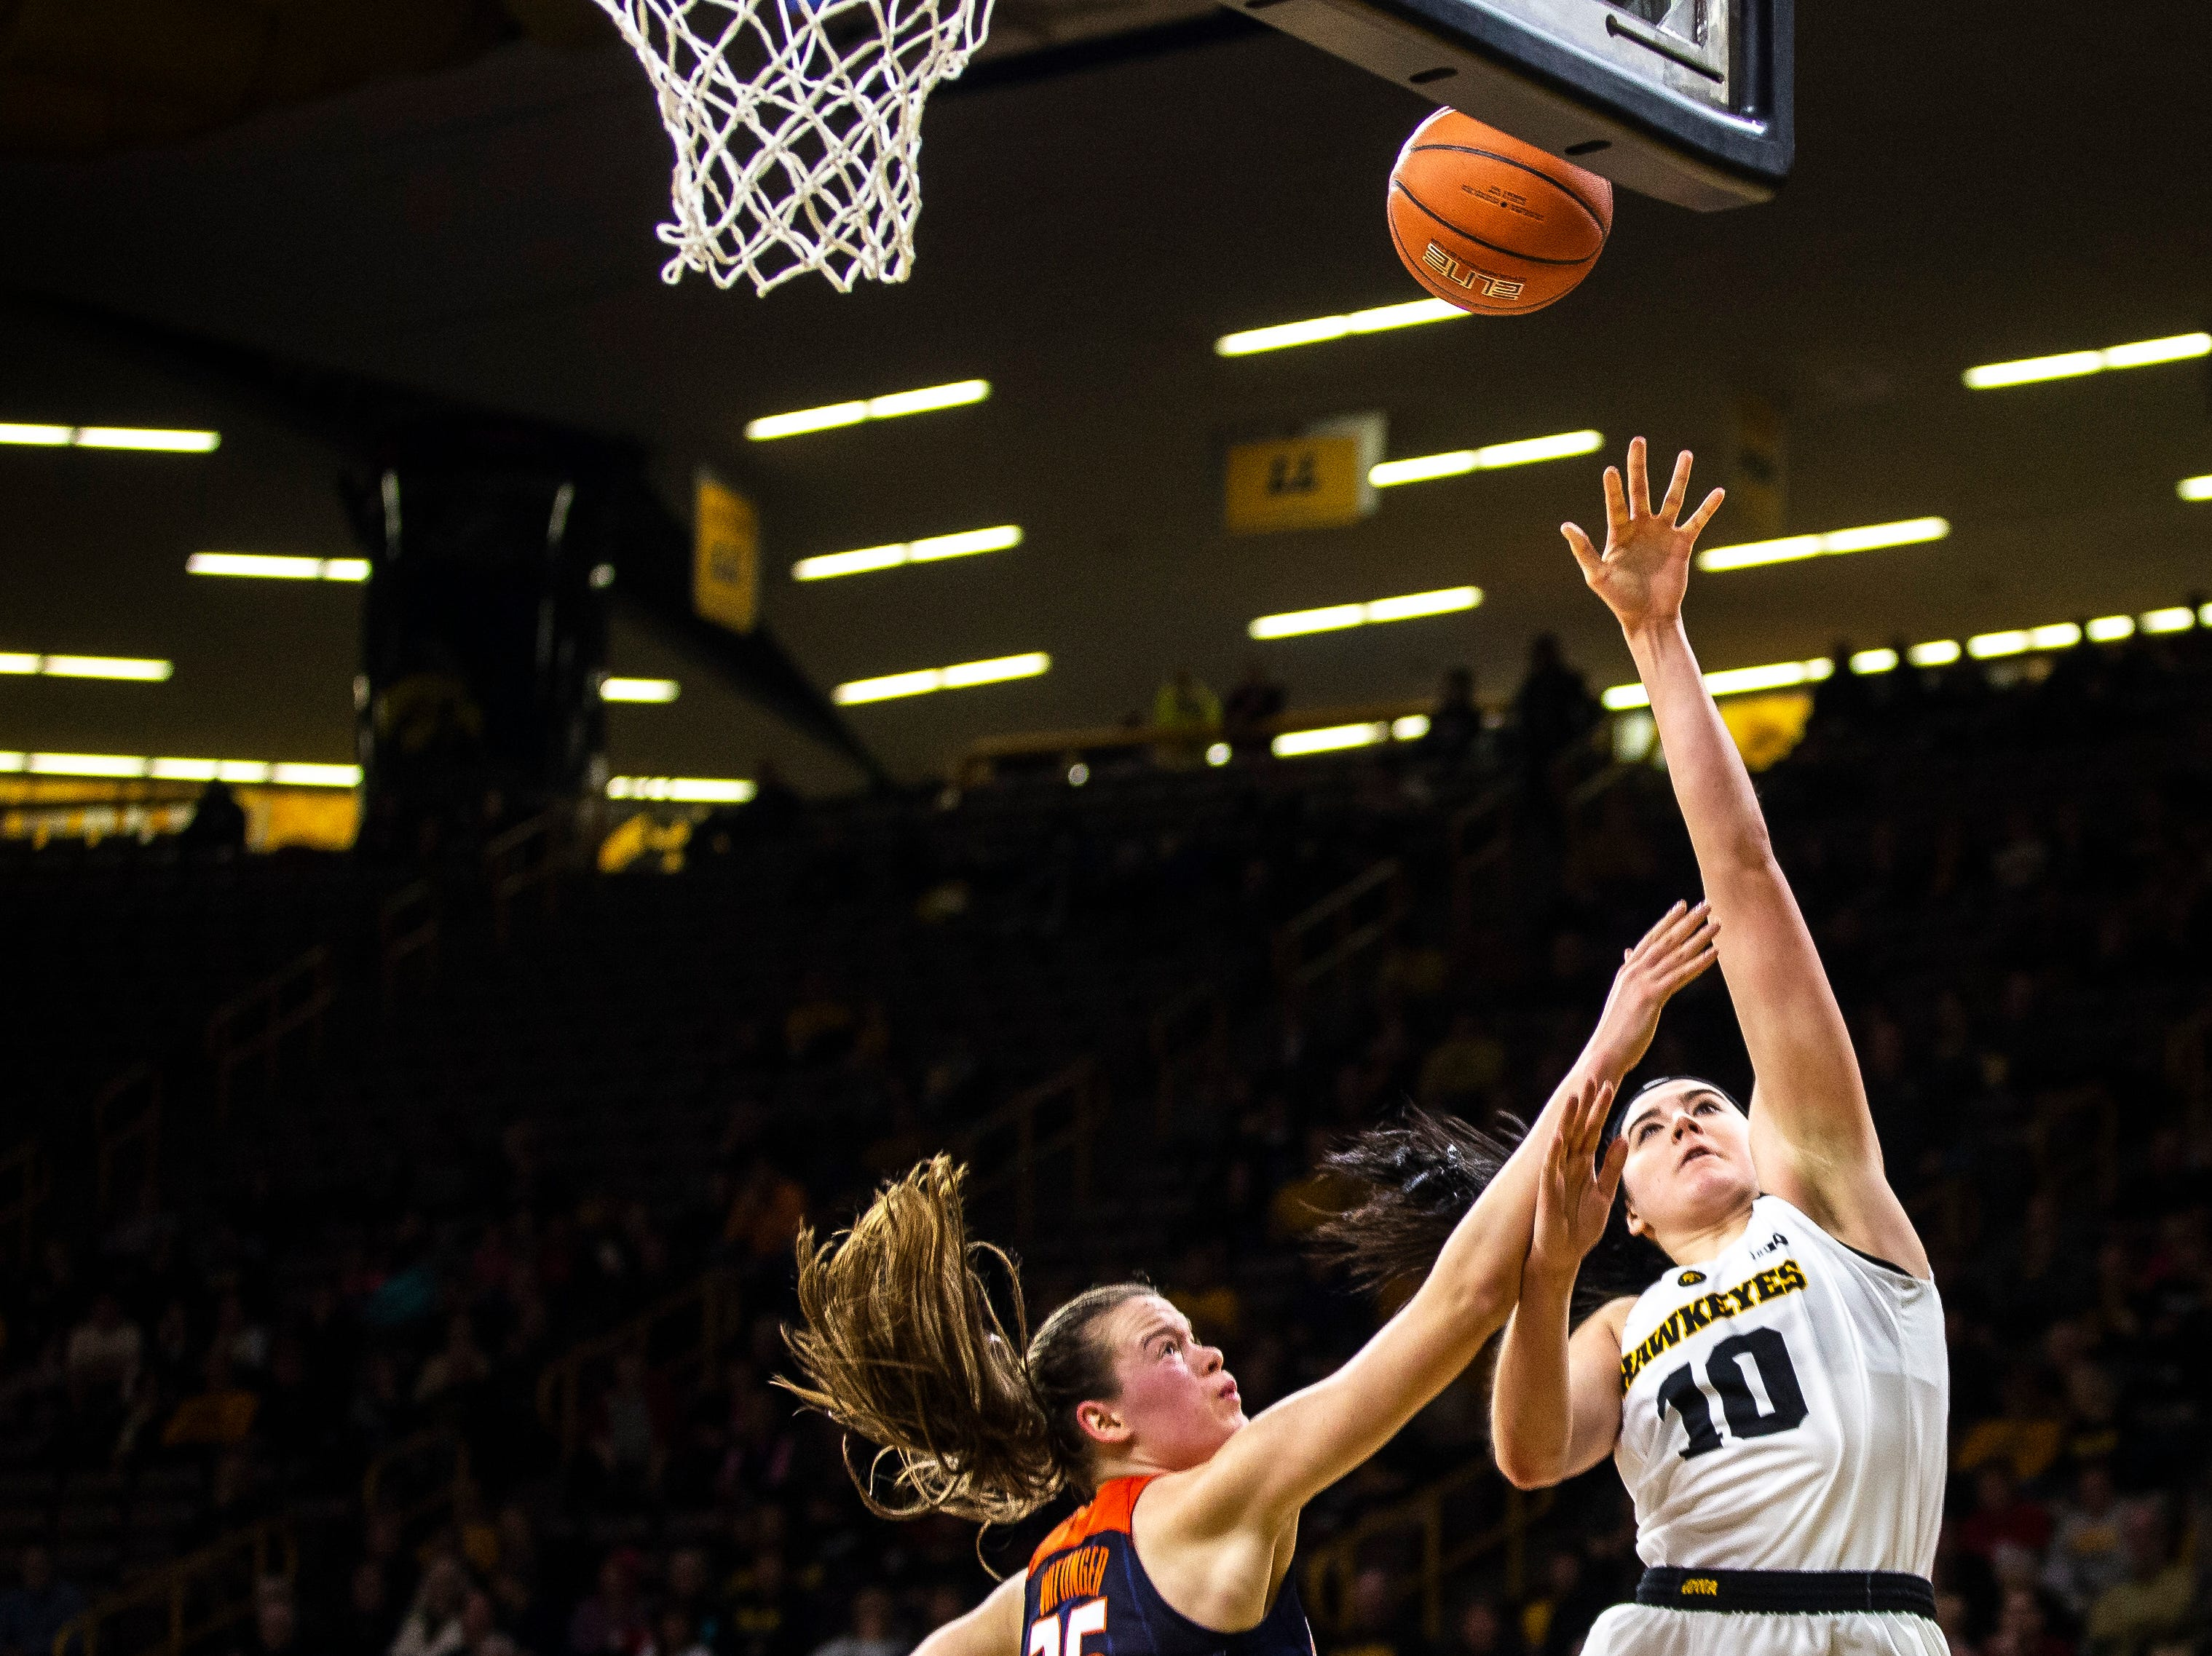 Iowa center Megan Gustafson (10) attempts a basket while Illinois forward Alex Wittinger defends during a NCAA Big Ten Conference women's basketball game on Thursday, Feb. 14, 2019 at Carver-Hawkeye Arena in Iowa City, Iowa.